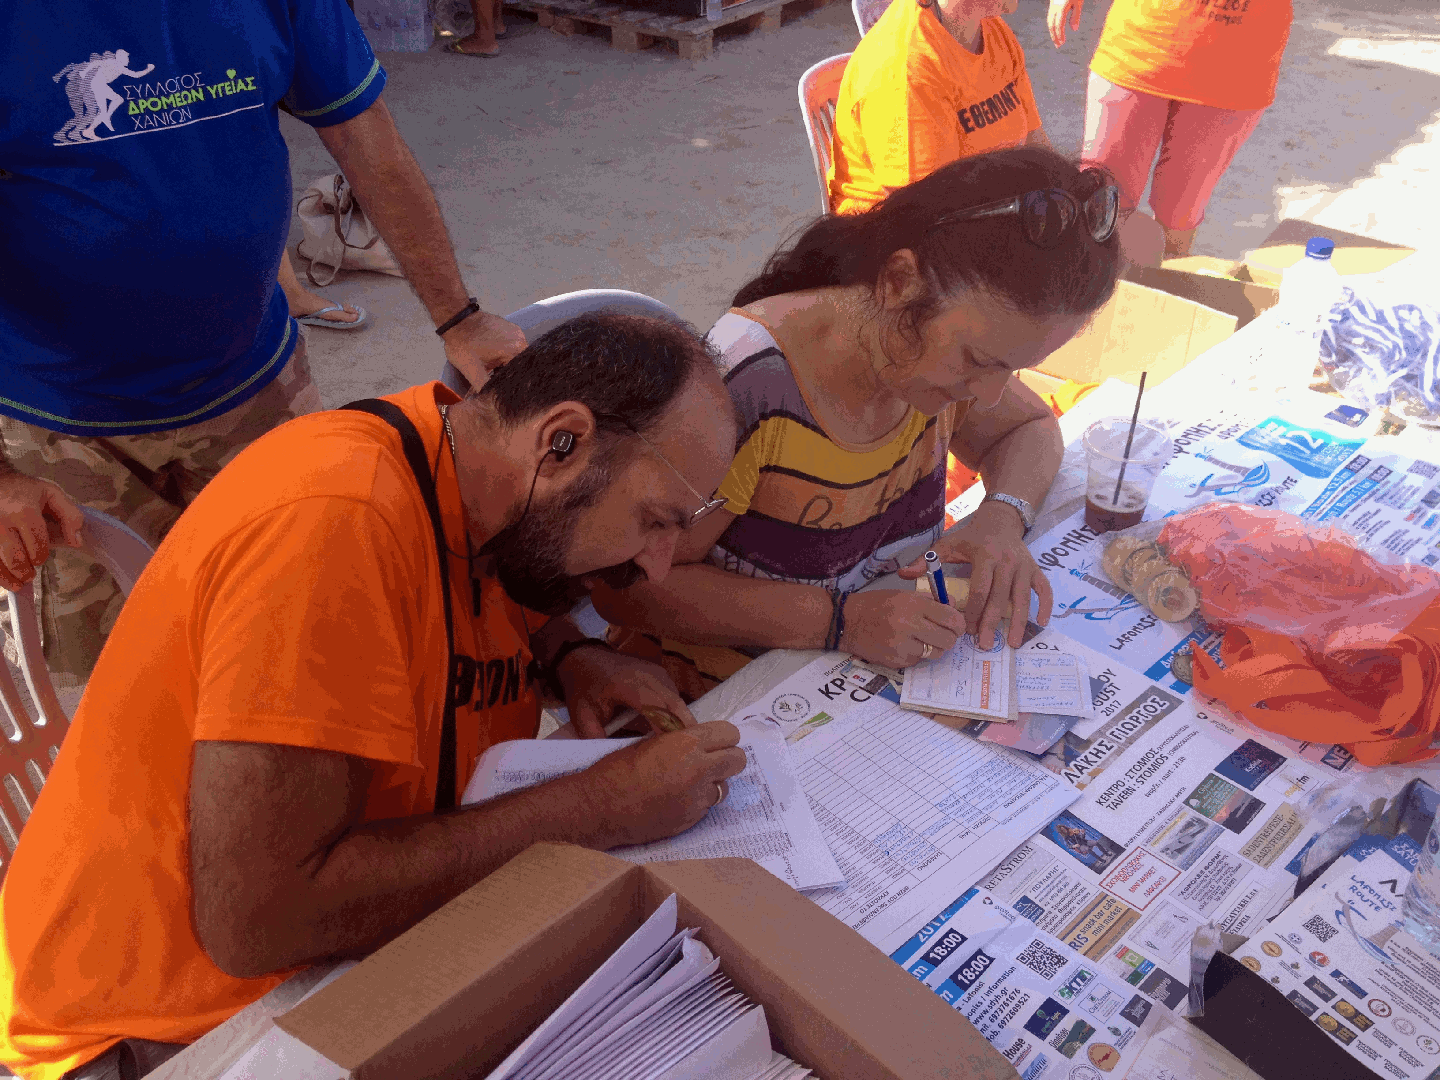 Manolis registering runners